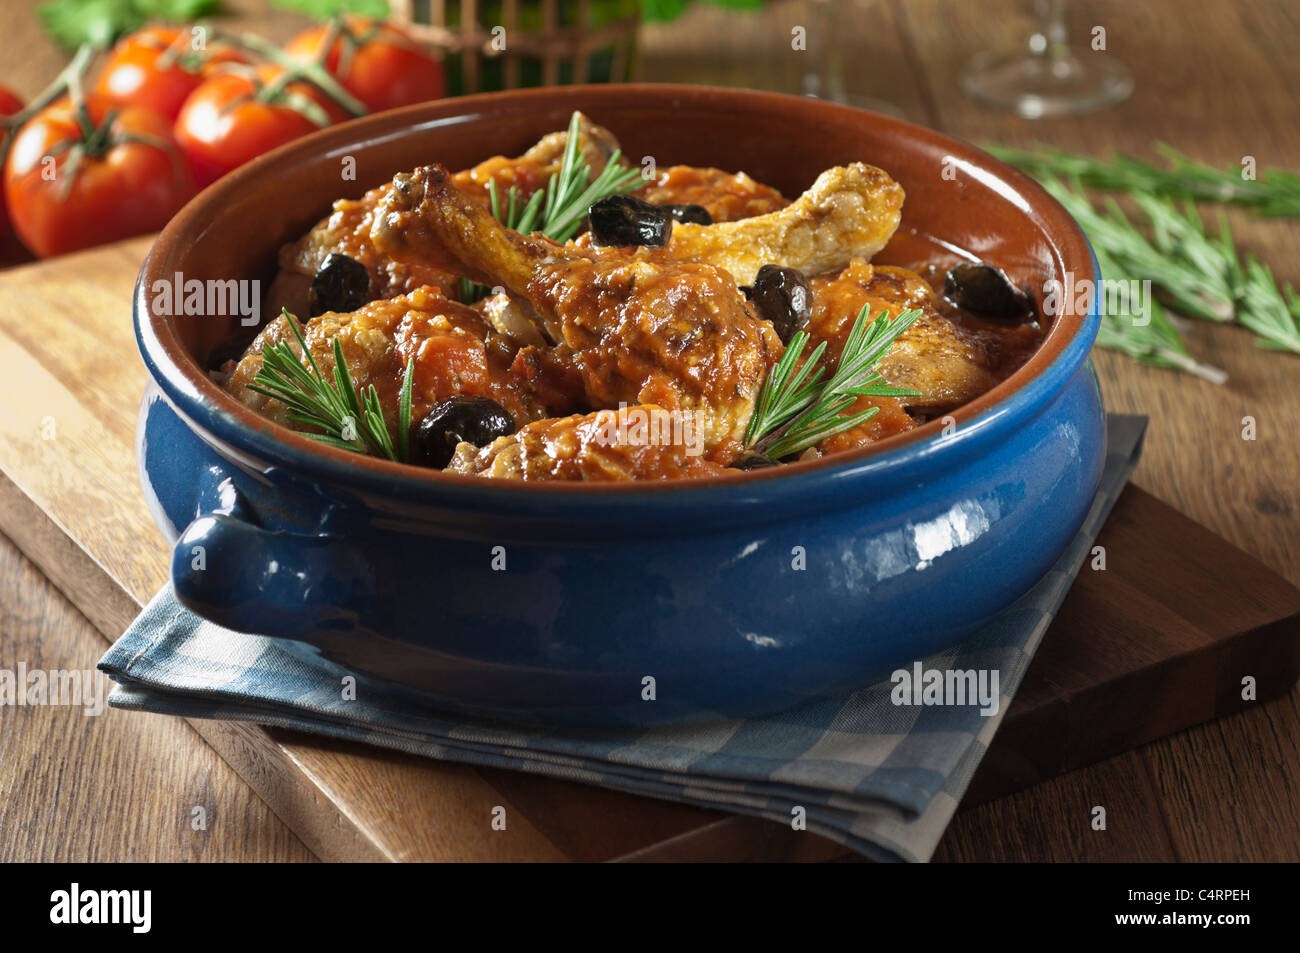 Chicken Cacciatore Italian Food - Stock Image